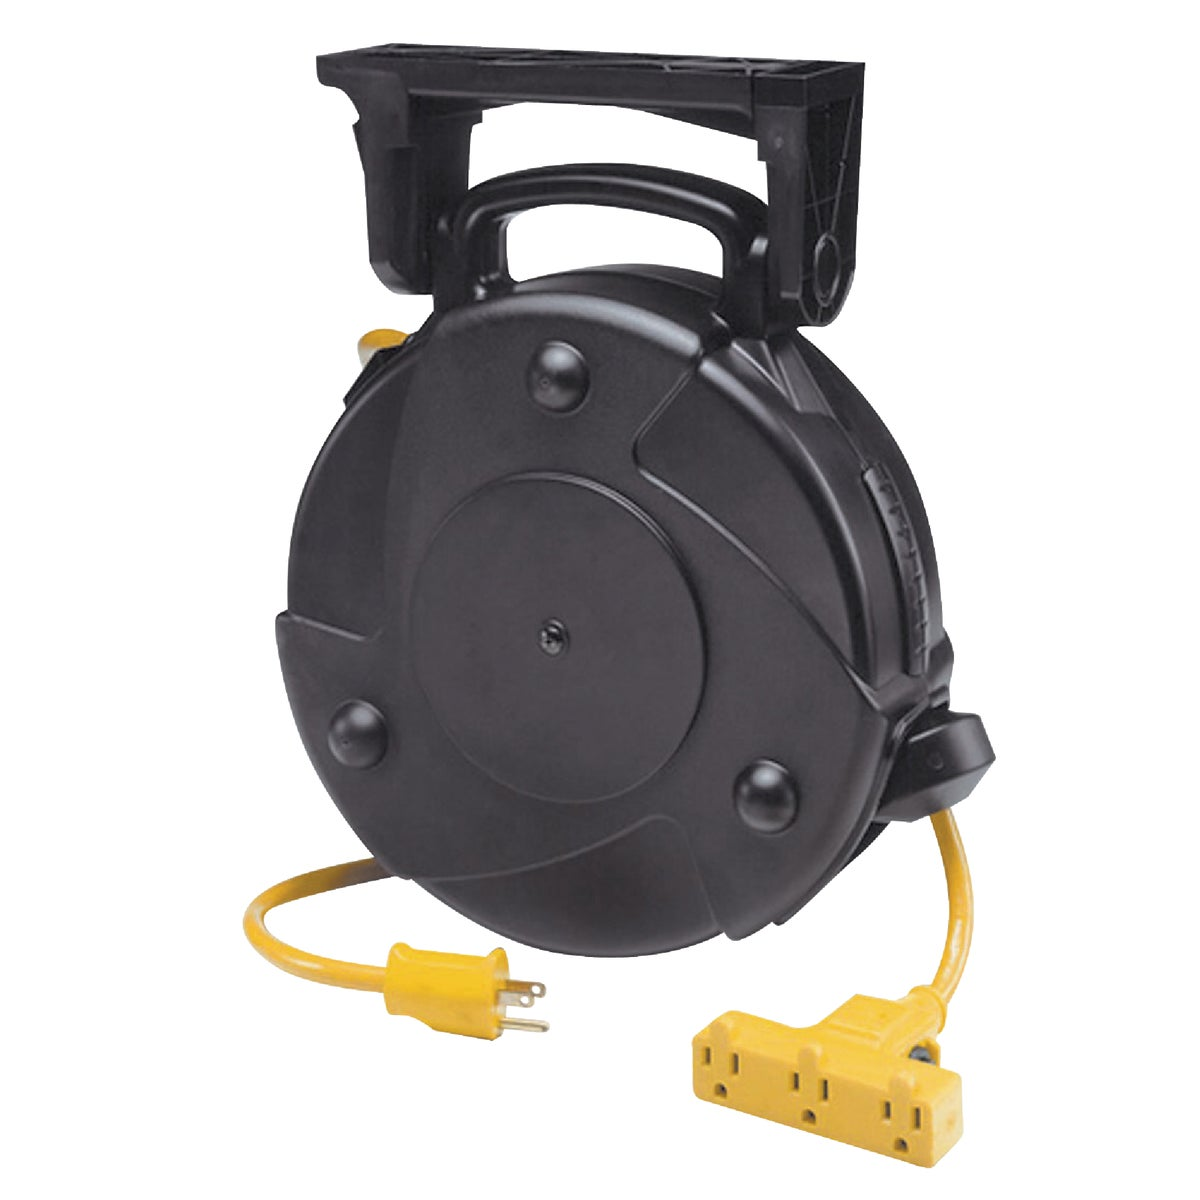 TRIPLE TAP CORD REEL - 8050MP by Alert Stamping & Mfg